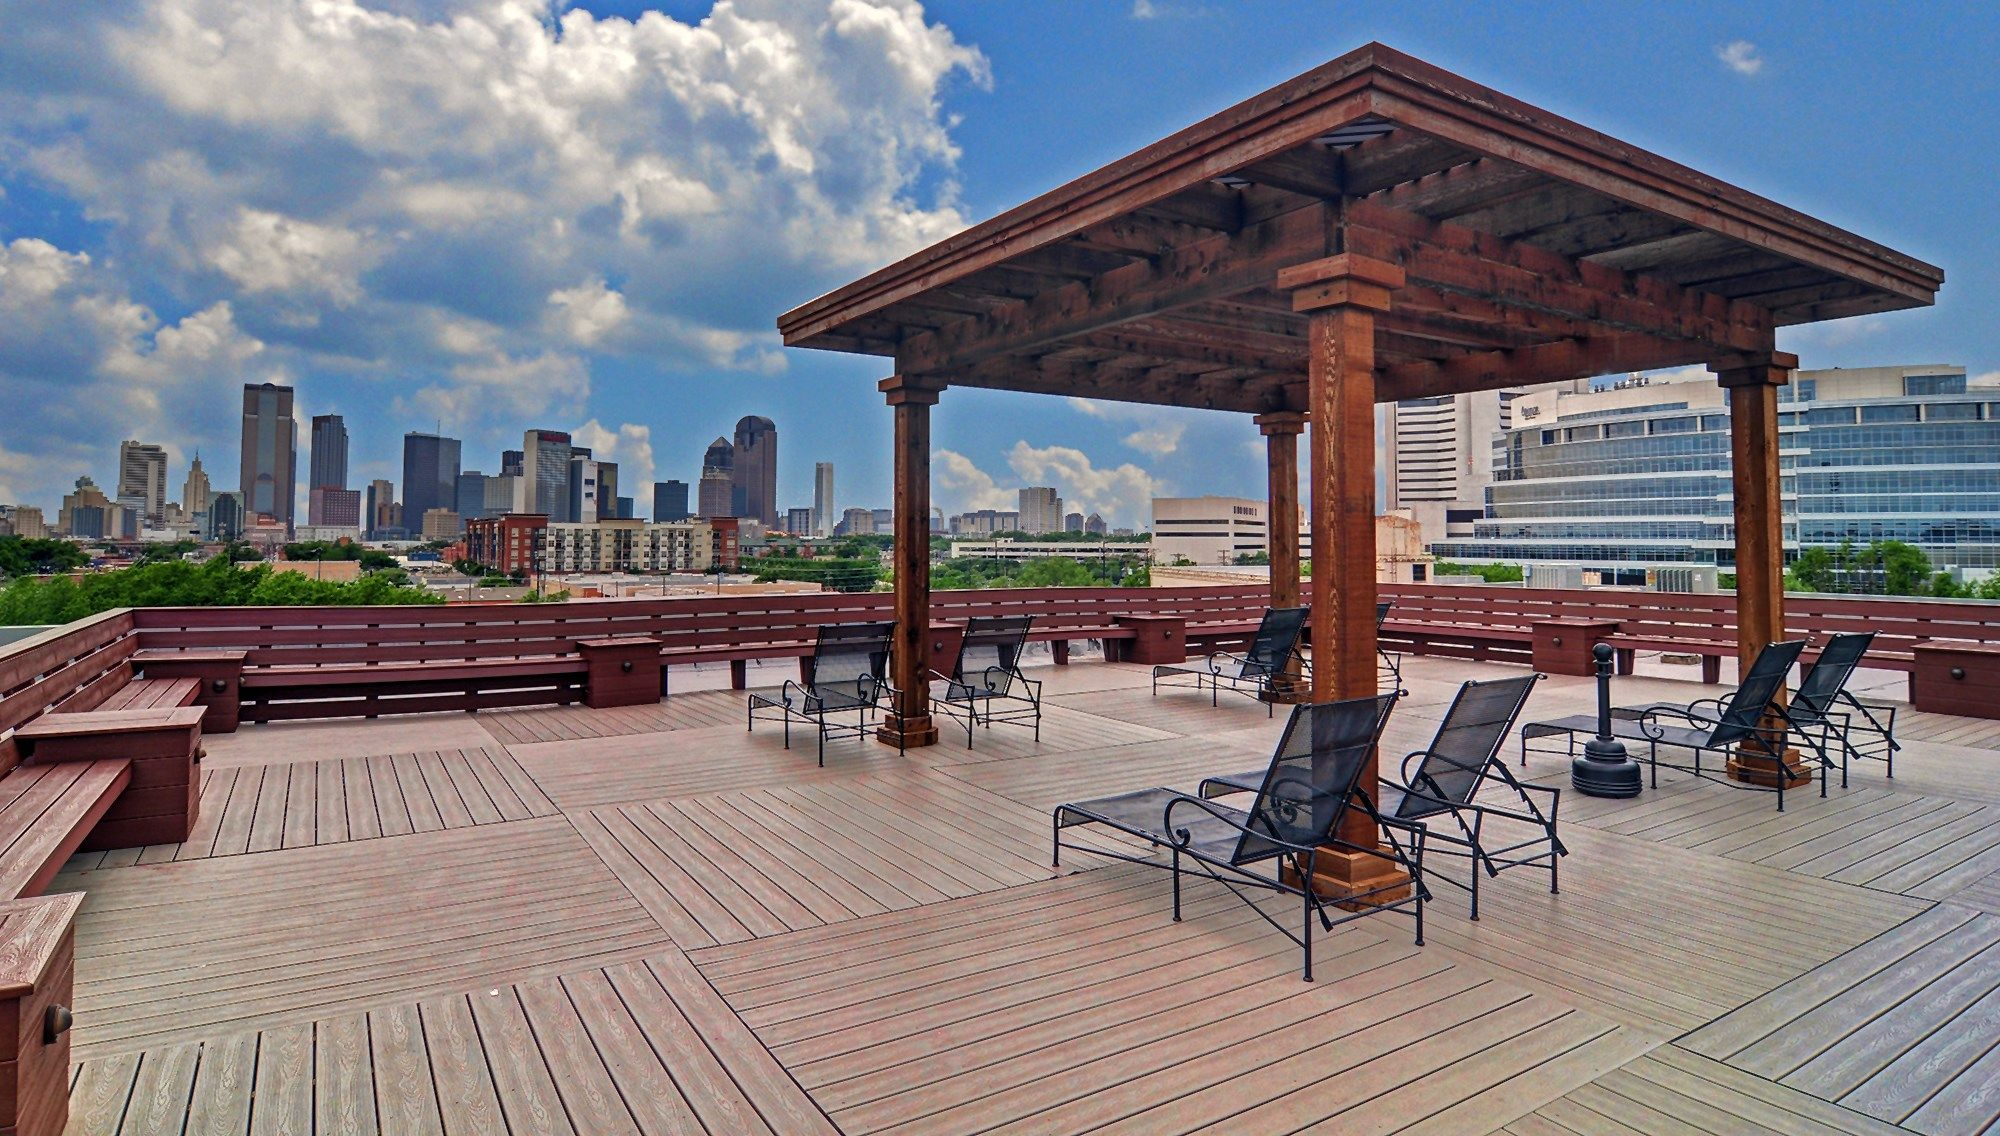 Relaxing Day And Enjoying The View At Deep Ellum Lofts Rooftop Patio In  Dallas, TX